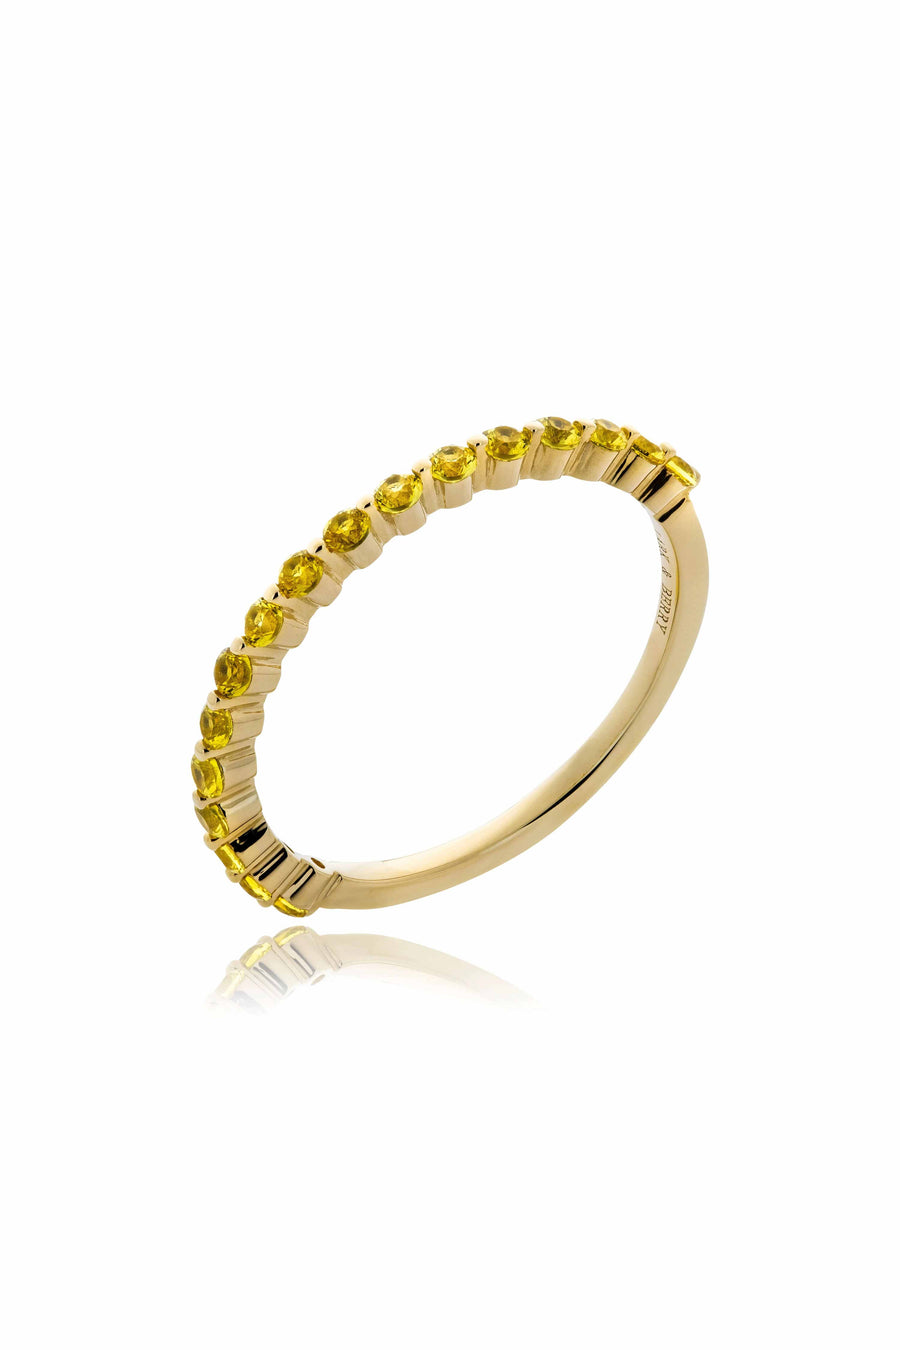 Modernist Stackable Yellow Sapphire Ring in 14K Gold